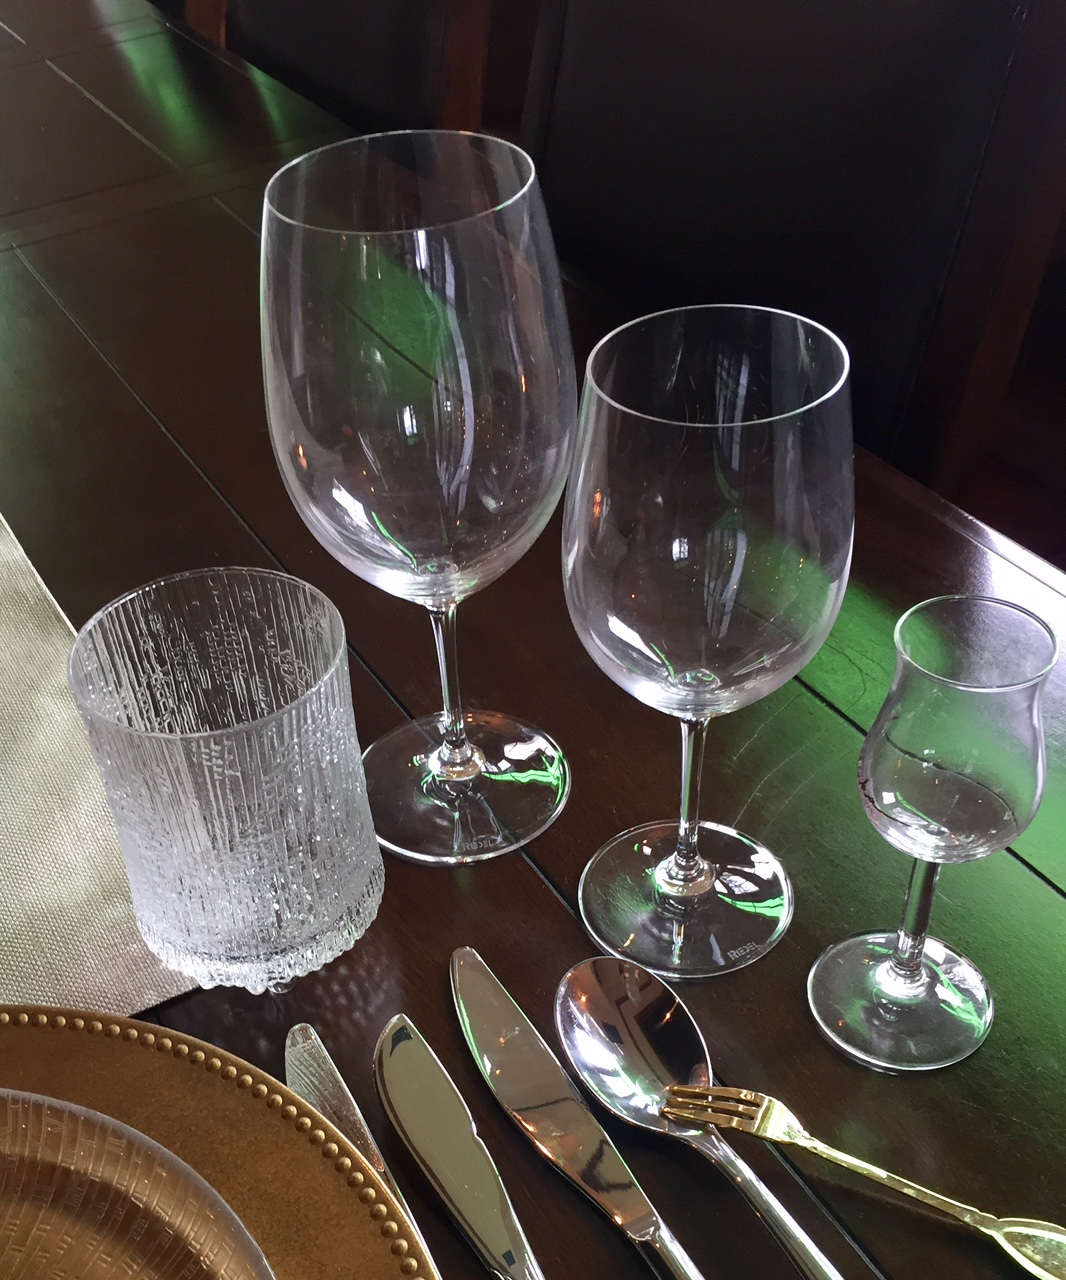 Wine - and Other - Glasses on Your Table